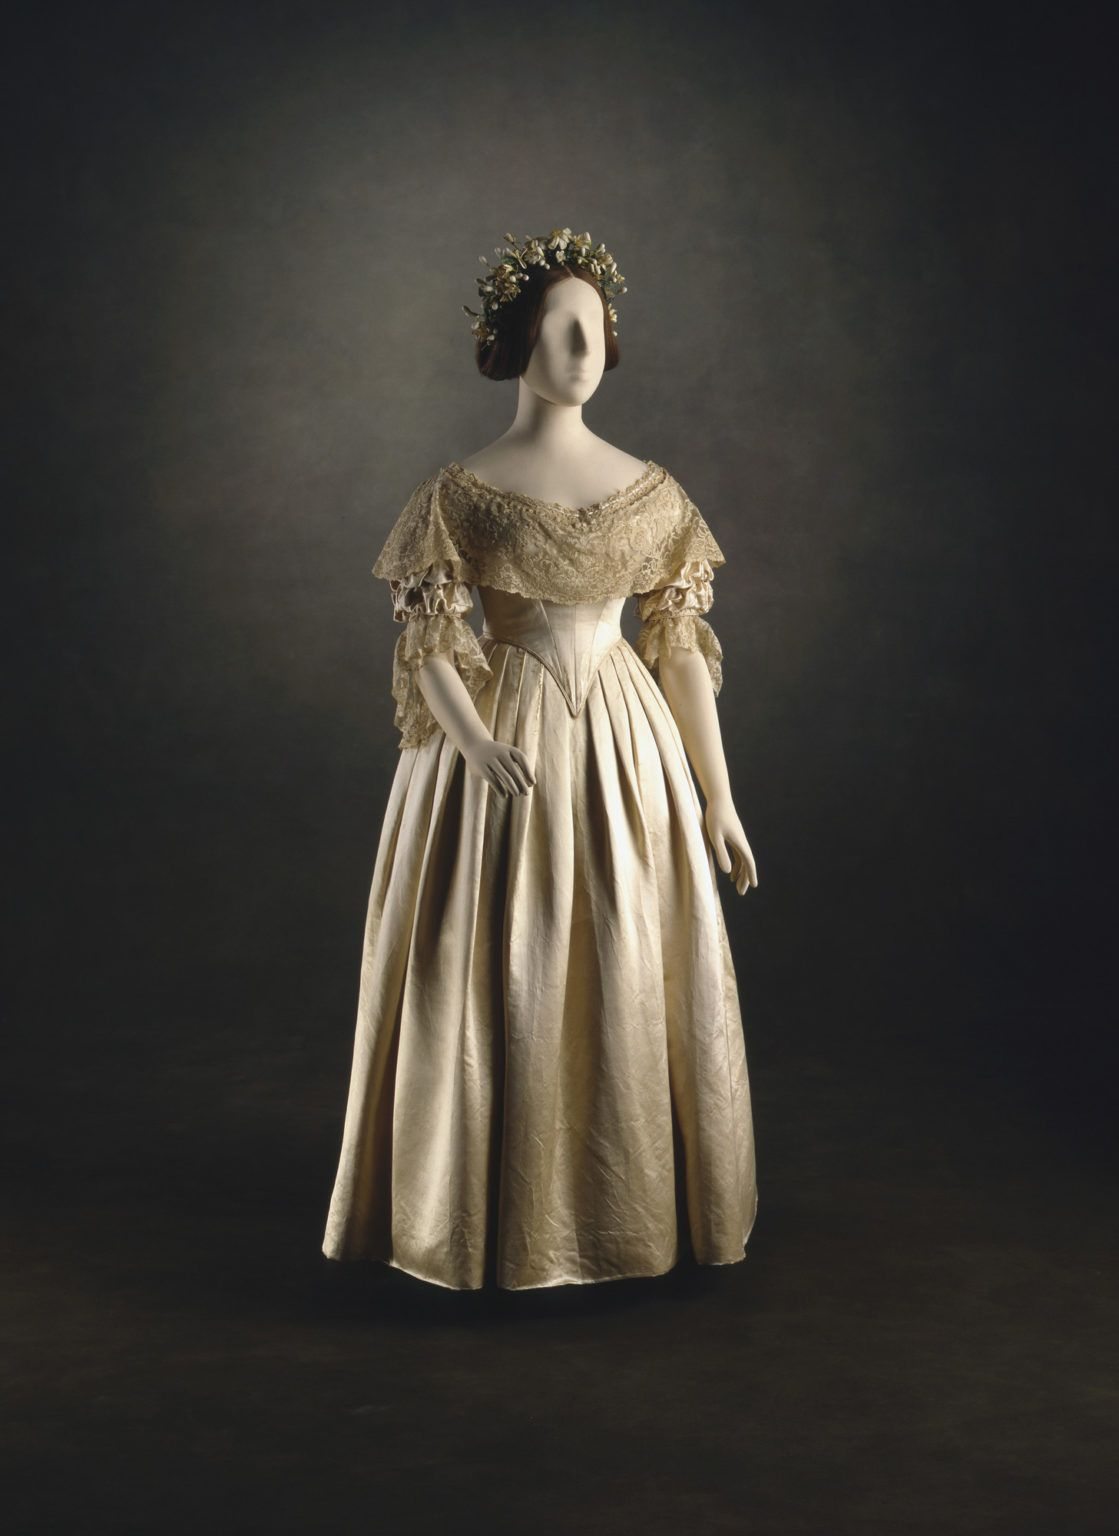 Queen Victoria S Wedding Dress I Wore A White Satin Gown With A Very Deep Flounce Of In 2021 Queen Victoria Wedding Queen Victoria Dress Queen Victoria Wedding Dress [ 1536 x 1119 Pixel ]